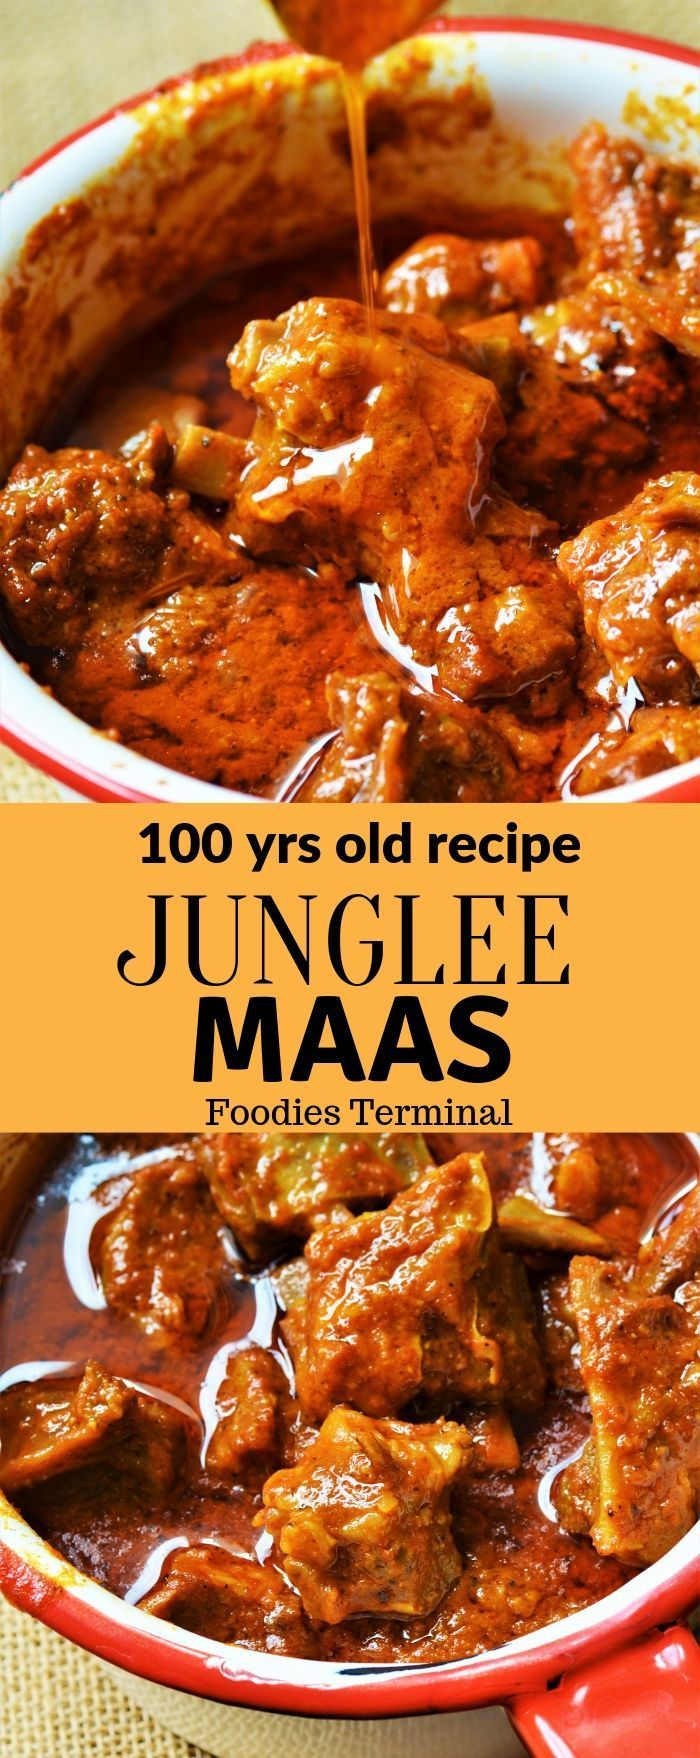 Junglee Maas (Step by Step) | Rajasthani Junglee Maas, a 100 yrs old recipe. » Foodies Terminal